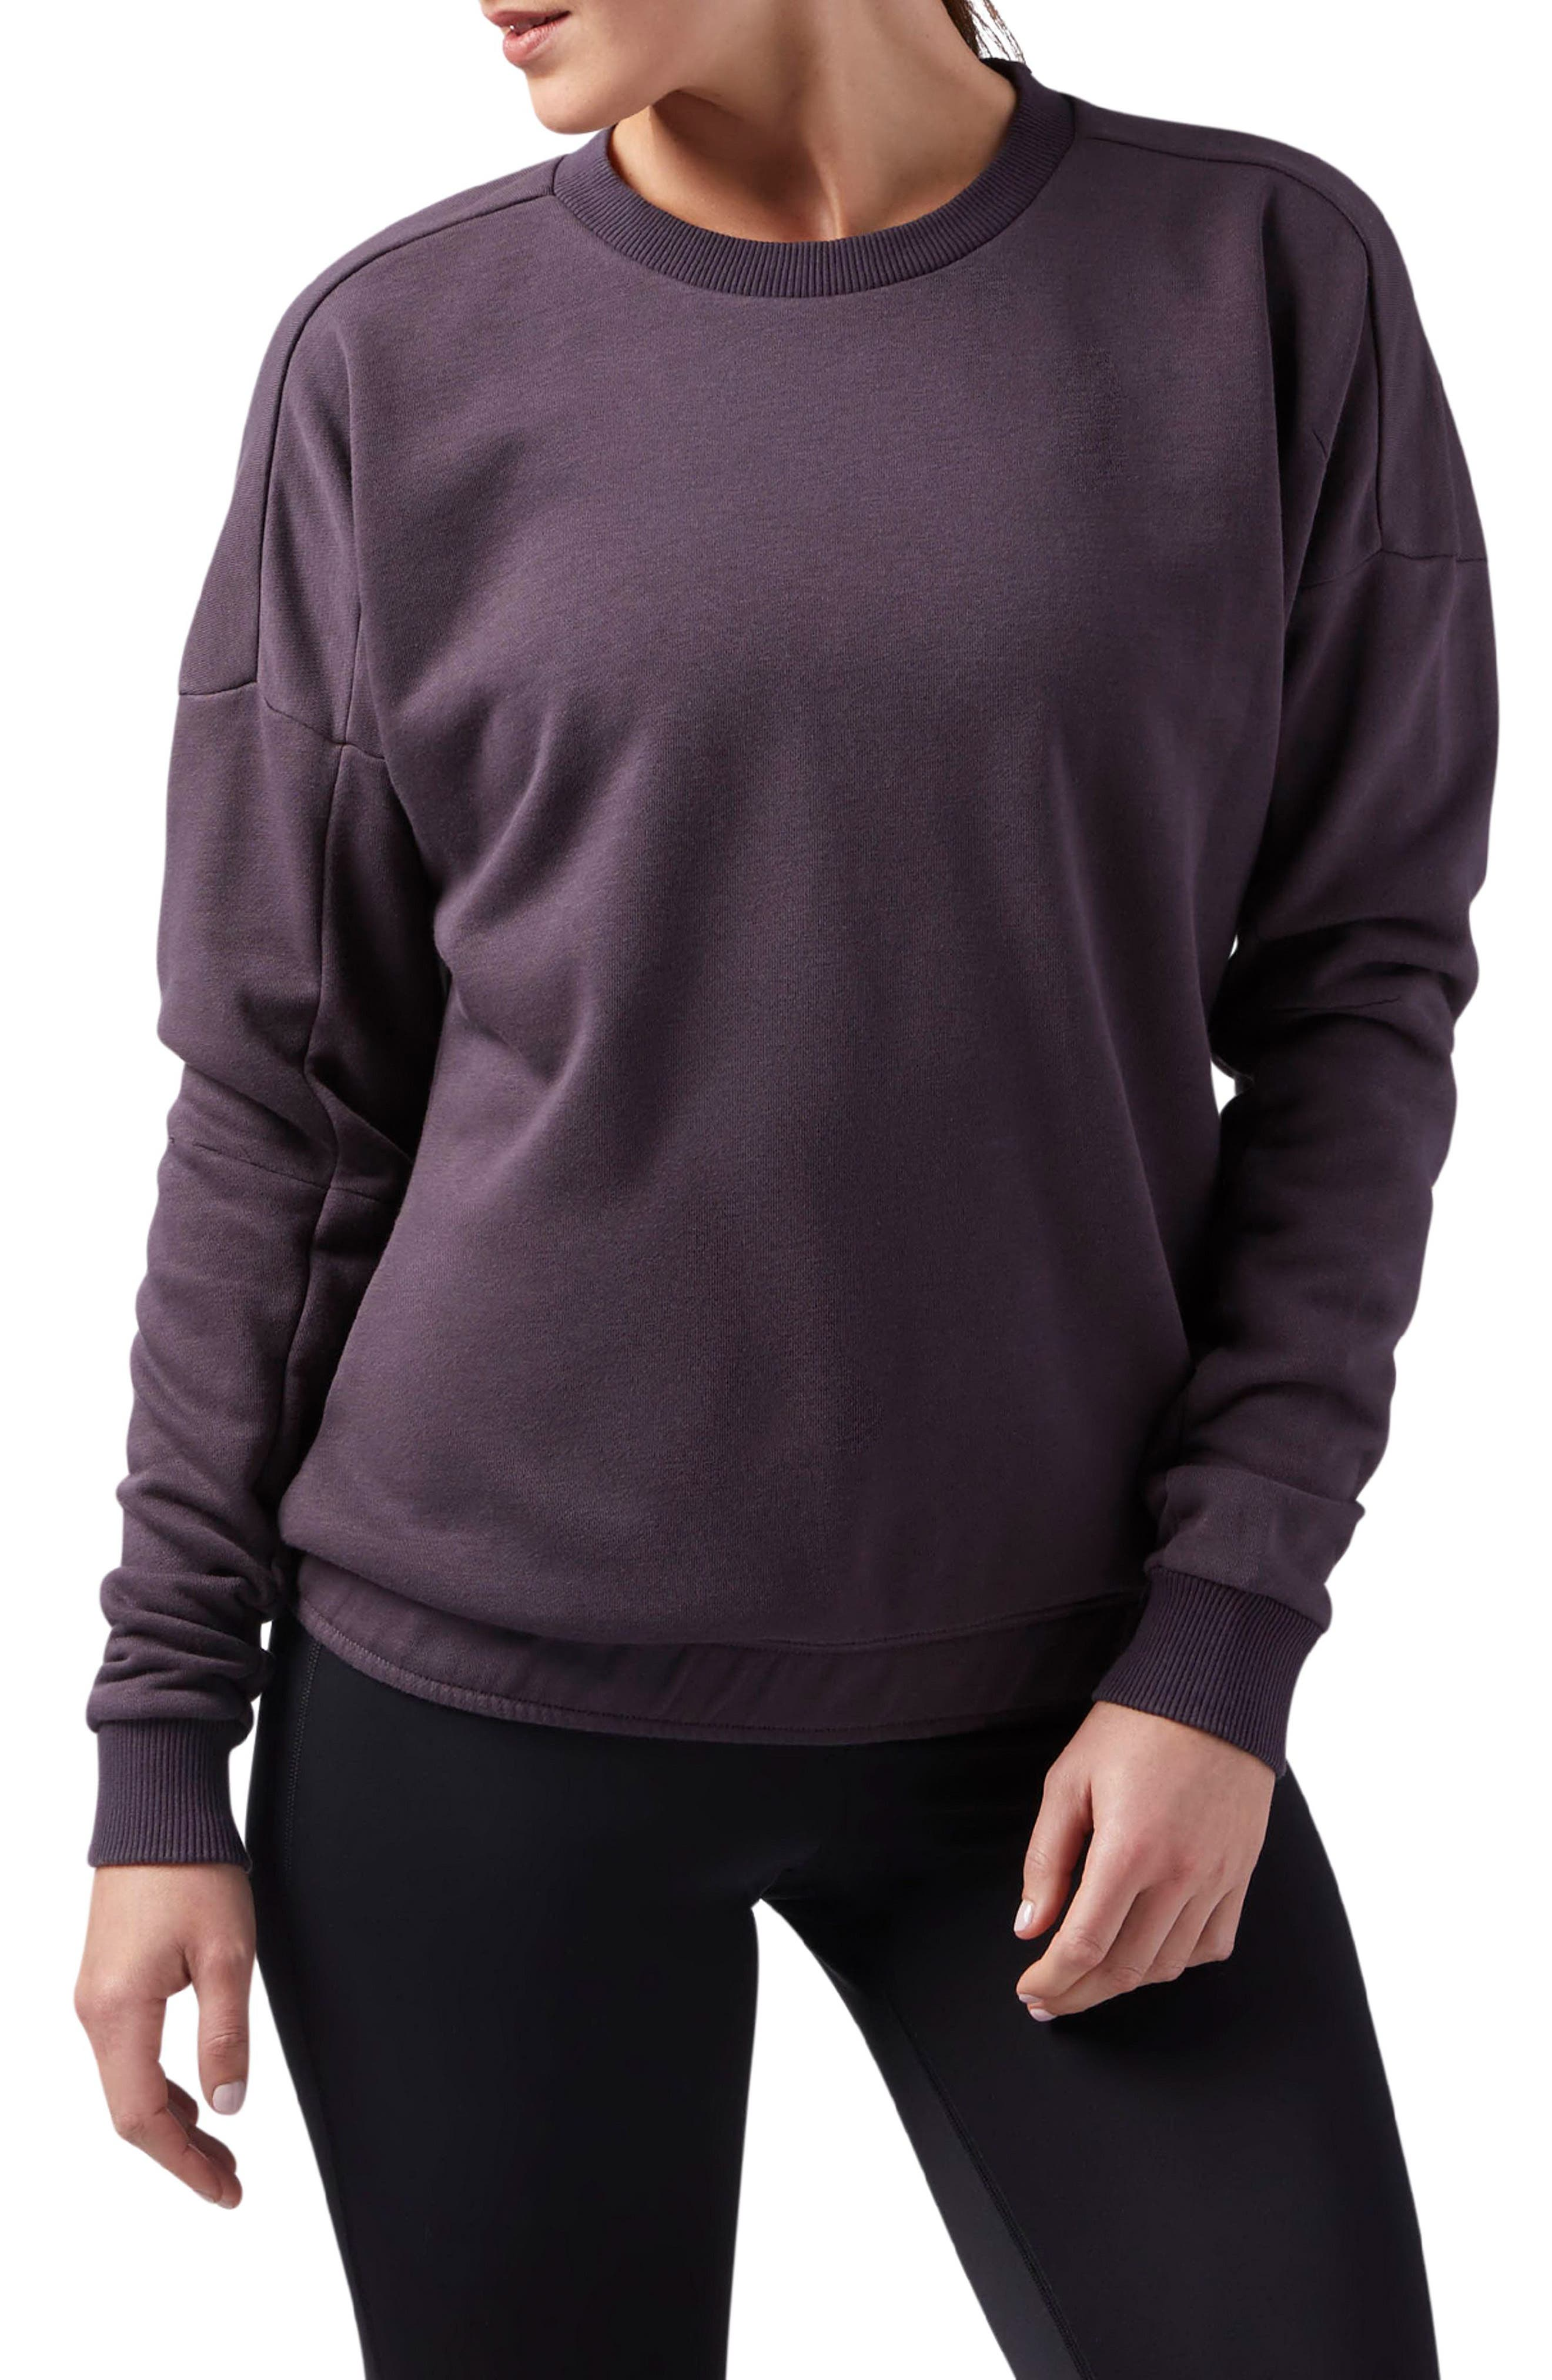 Elements Washed Sweatshirt,                         Main,                         color, 501